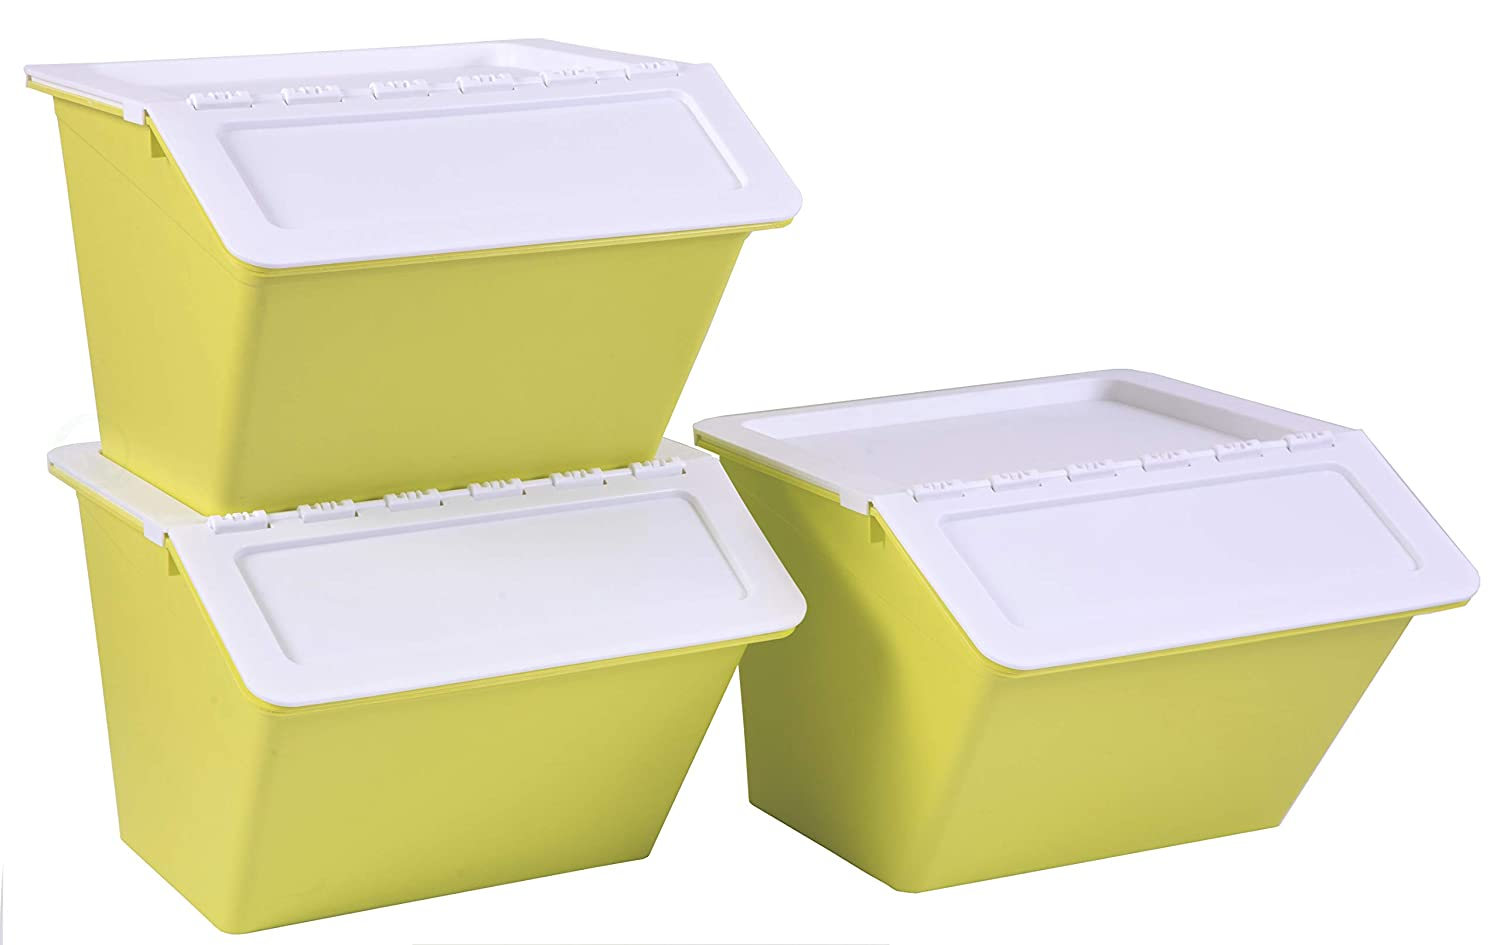 Basicwise QI003396.G Large Green Plastic Stackable Storage Bins